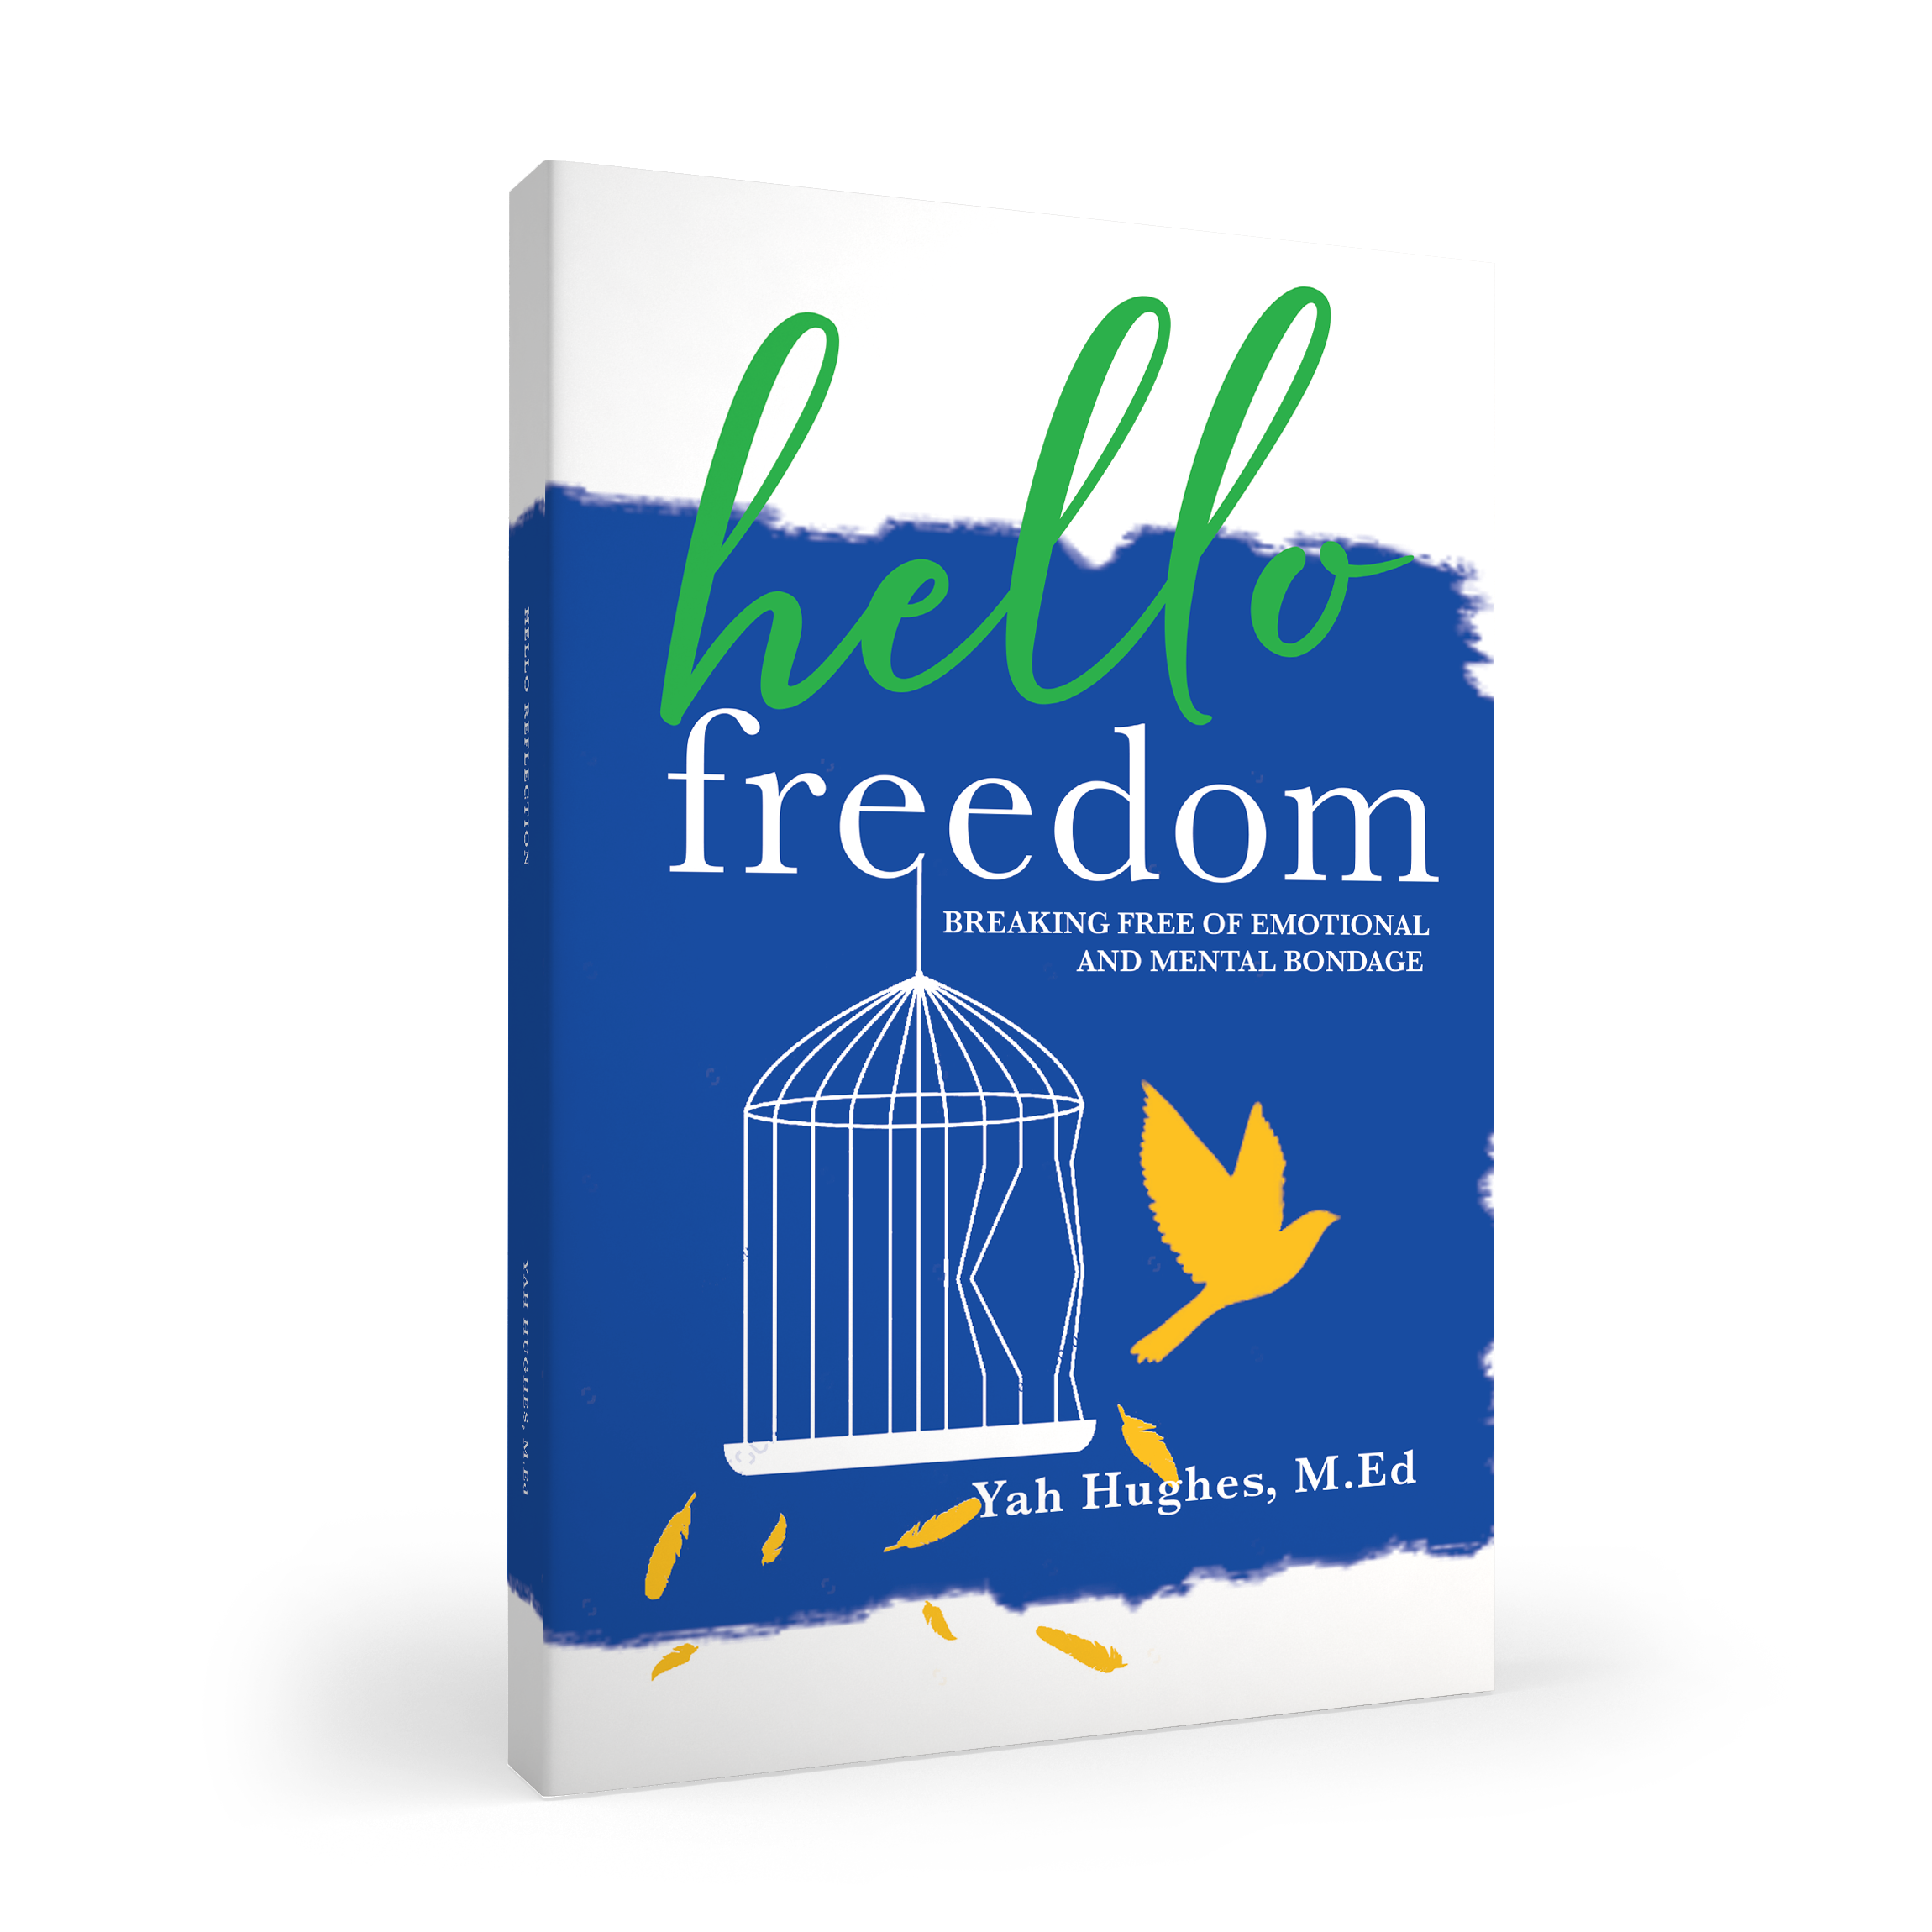 Hello Freedom Book_Mockup1.png